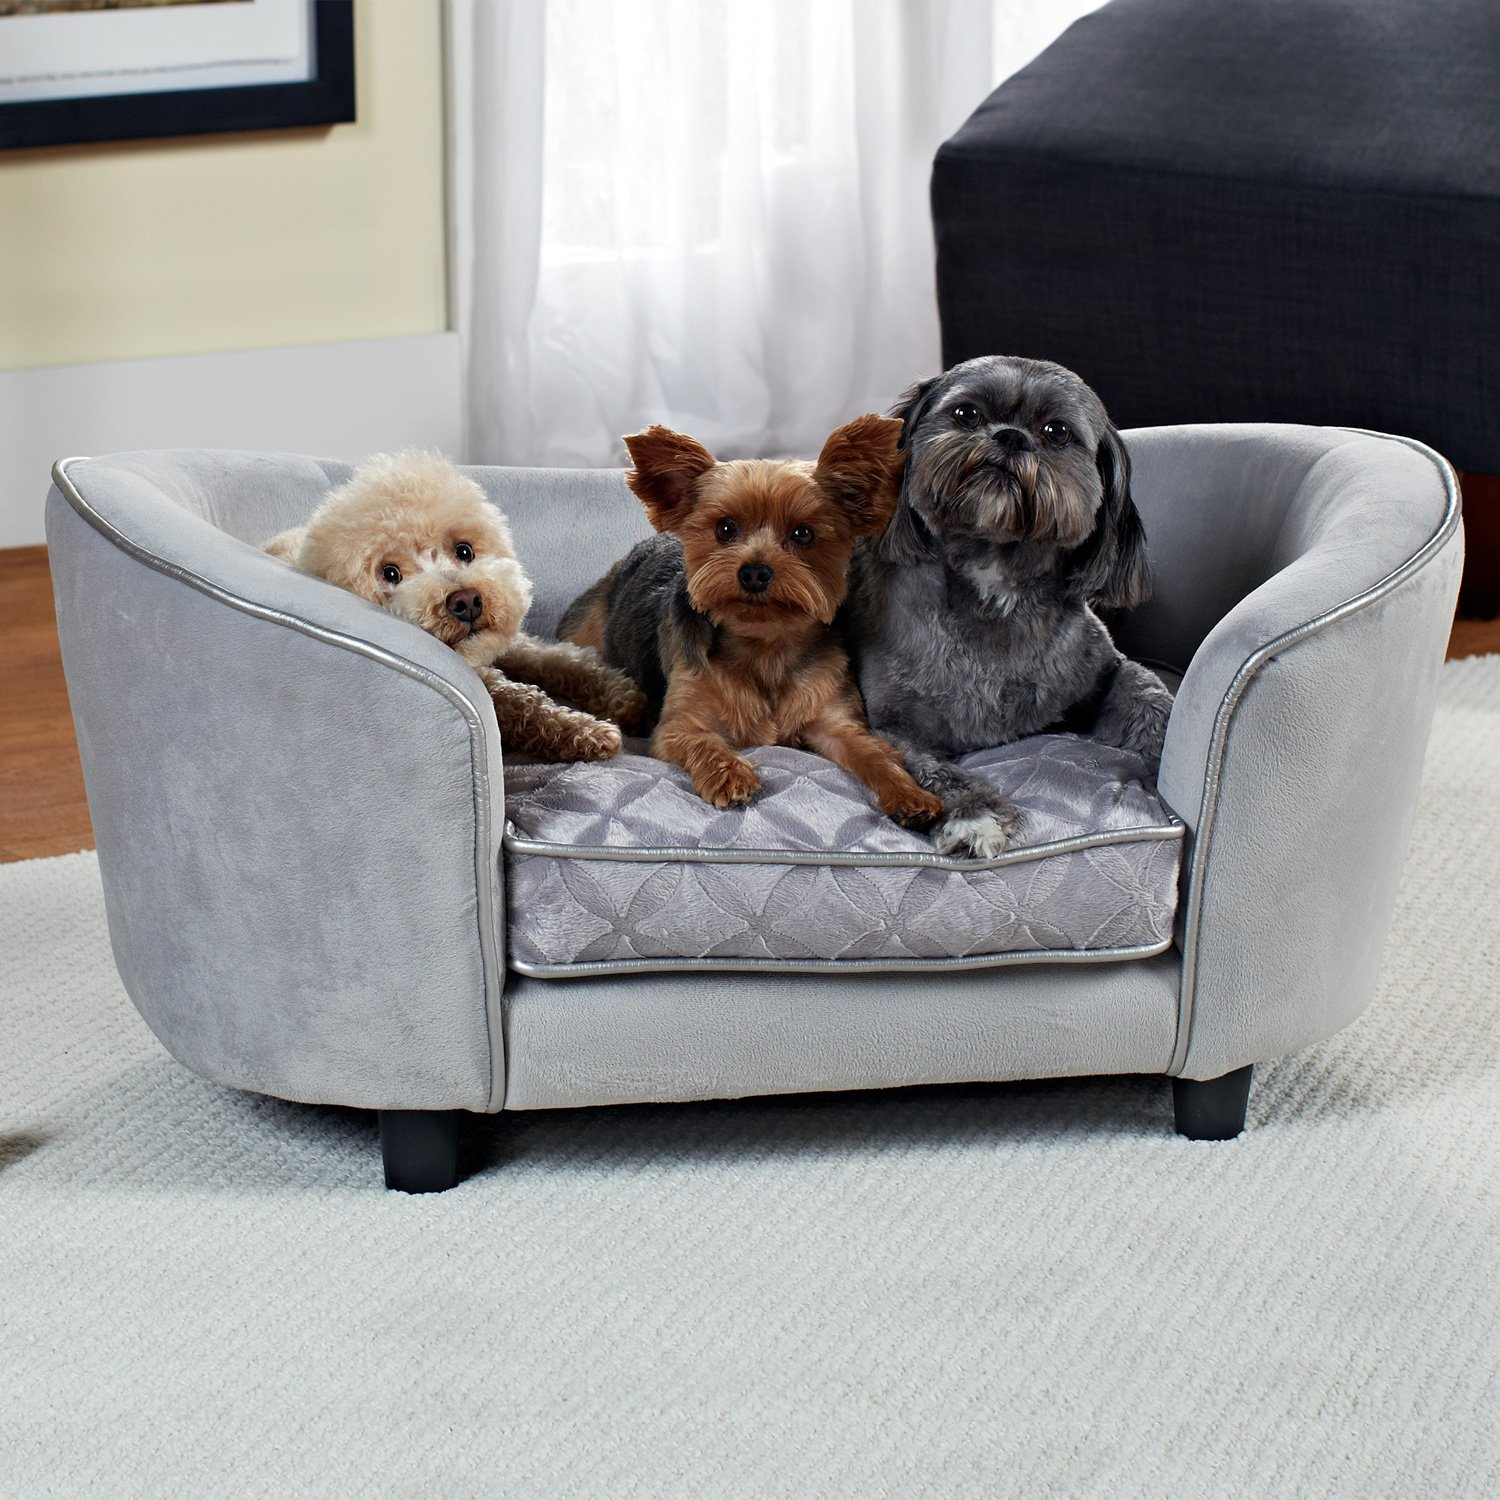 fleas in sofa no pets huffman koos sofas enchanted home pet quicksilver dog bed gray petco